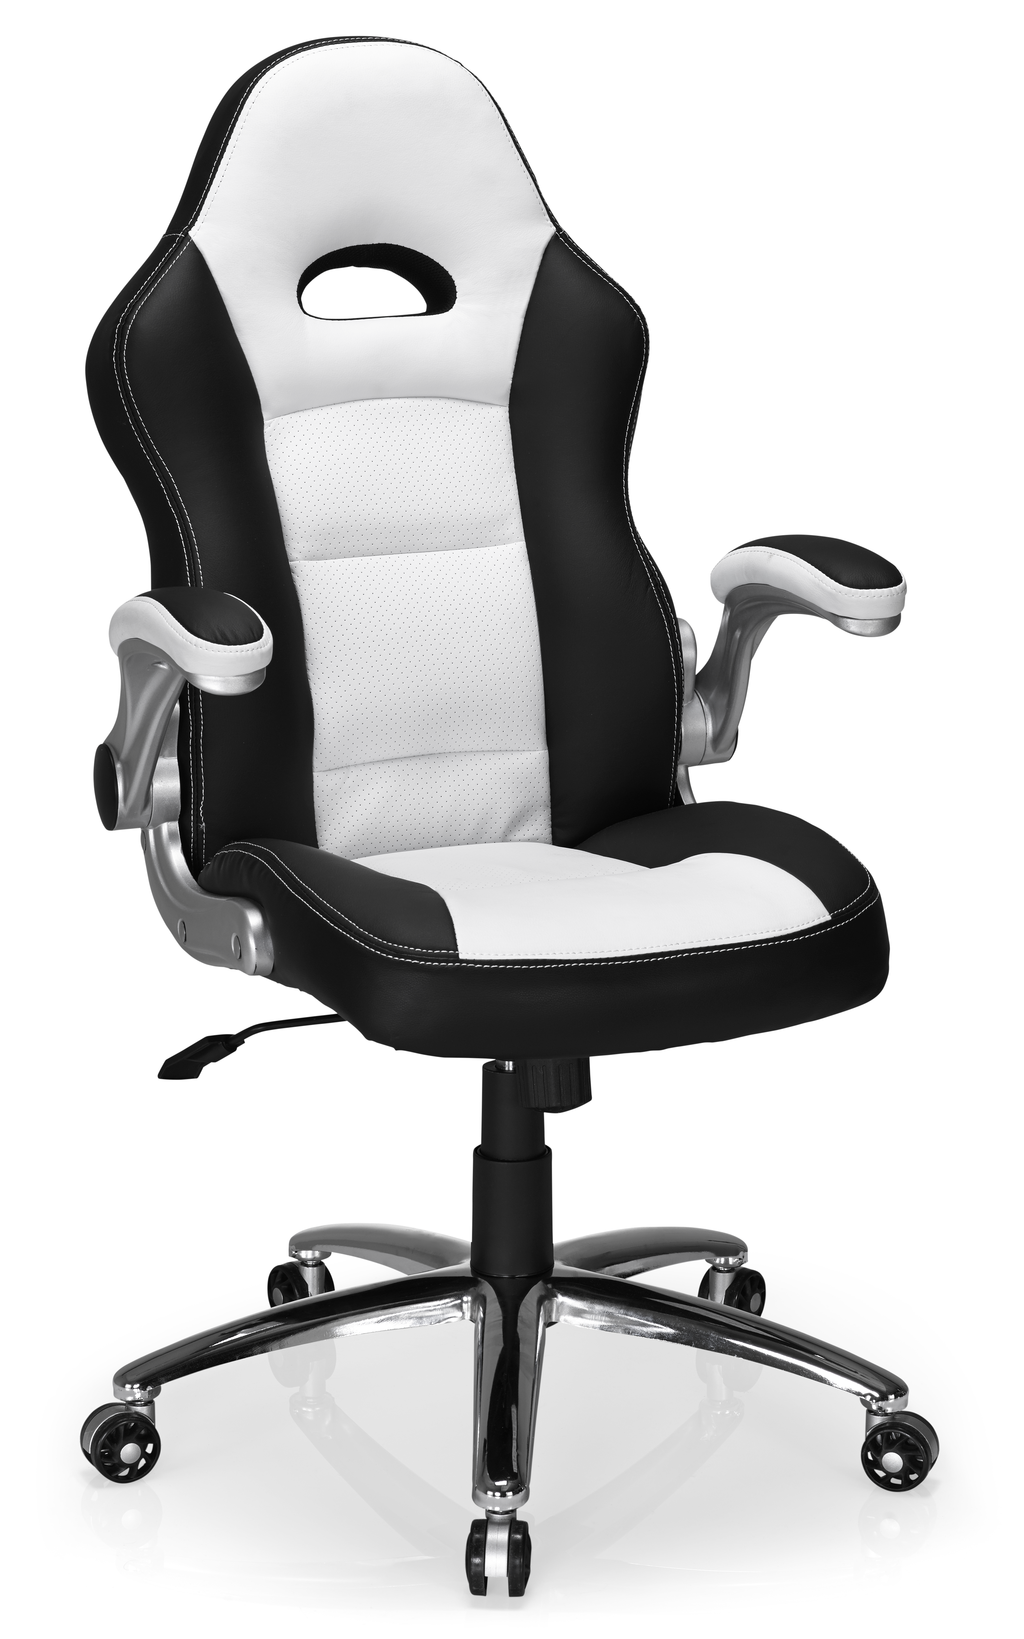 Hummingbird Le Mans Racer Chair Black and White. Loving